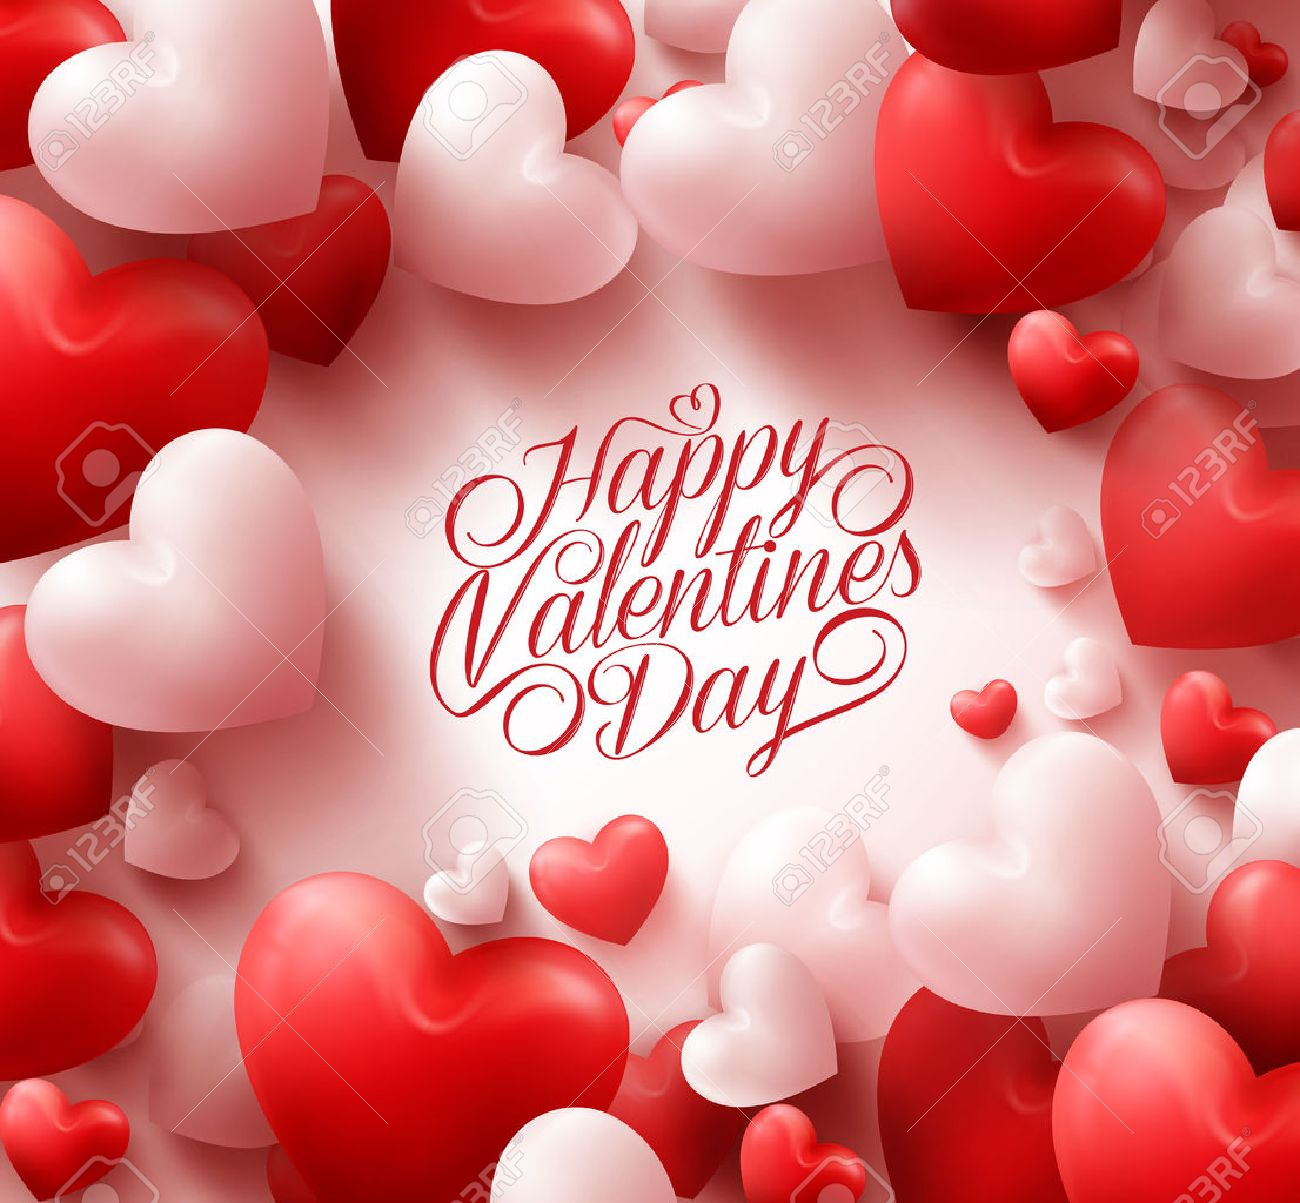 3d realistic red hearts background with sweet happy valentines 3d realistic red hearts background with sweet happy valentines day greetings in the middle illustration m4hsunfo Images